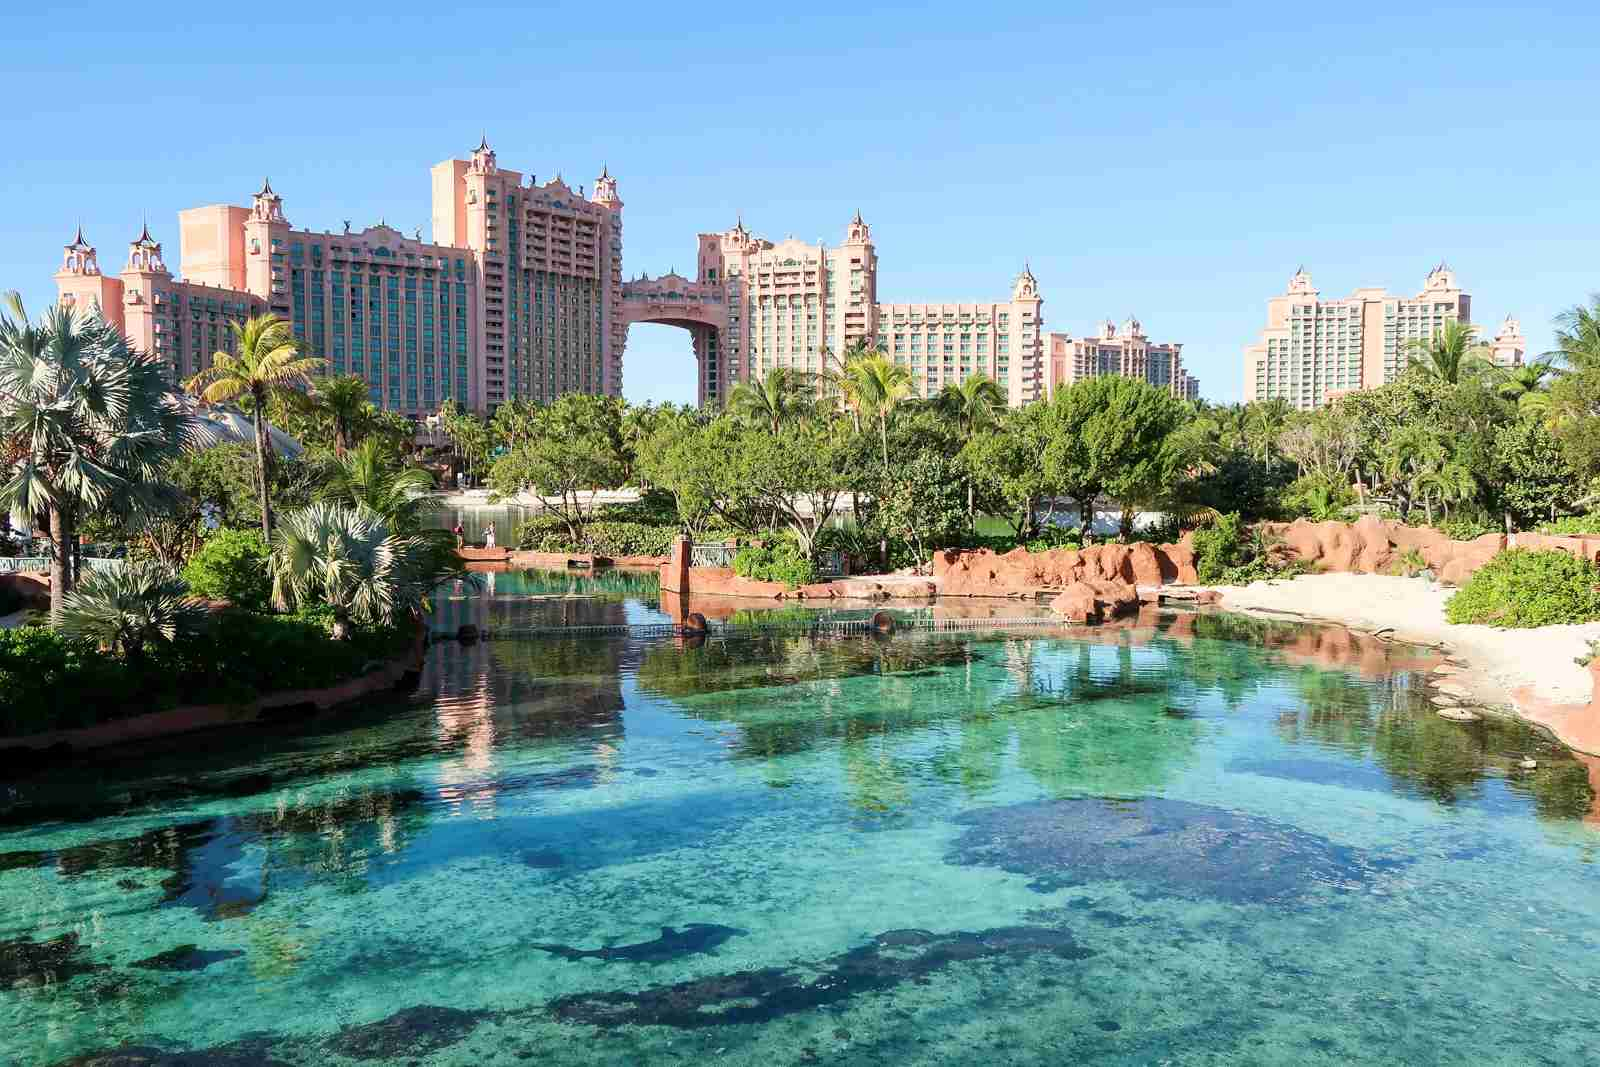 Atlantis in the Bahamas (Photo by Katie Genter/The Points Guy)